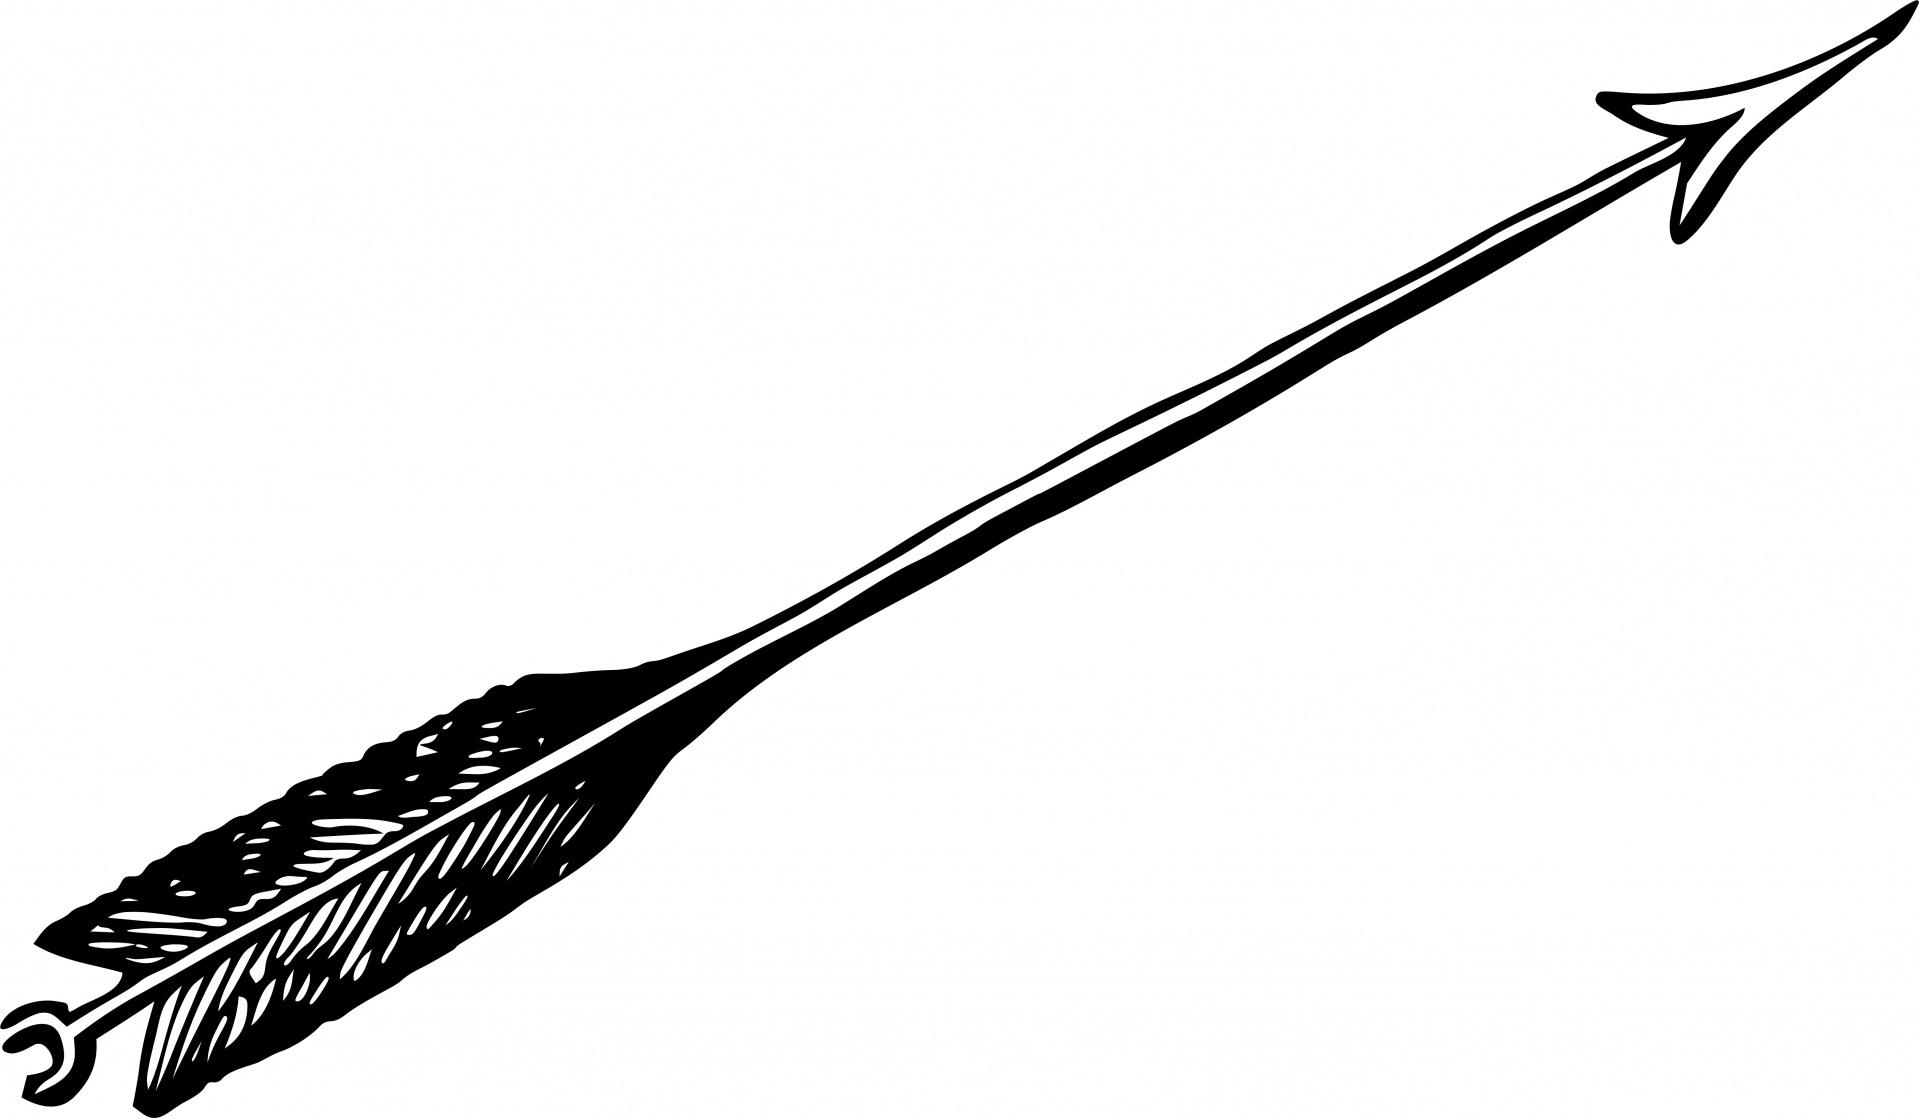 Arrows clipart black and white - ClipartFox image black and white download